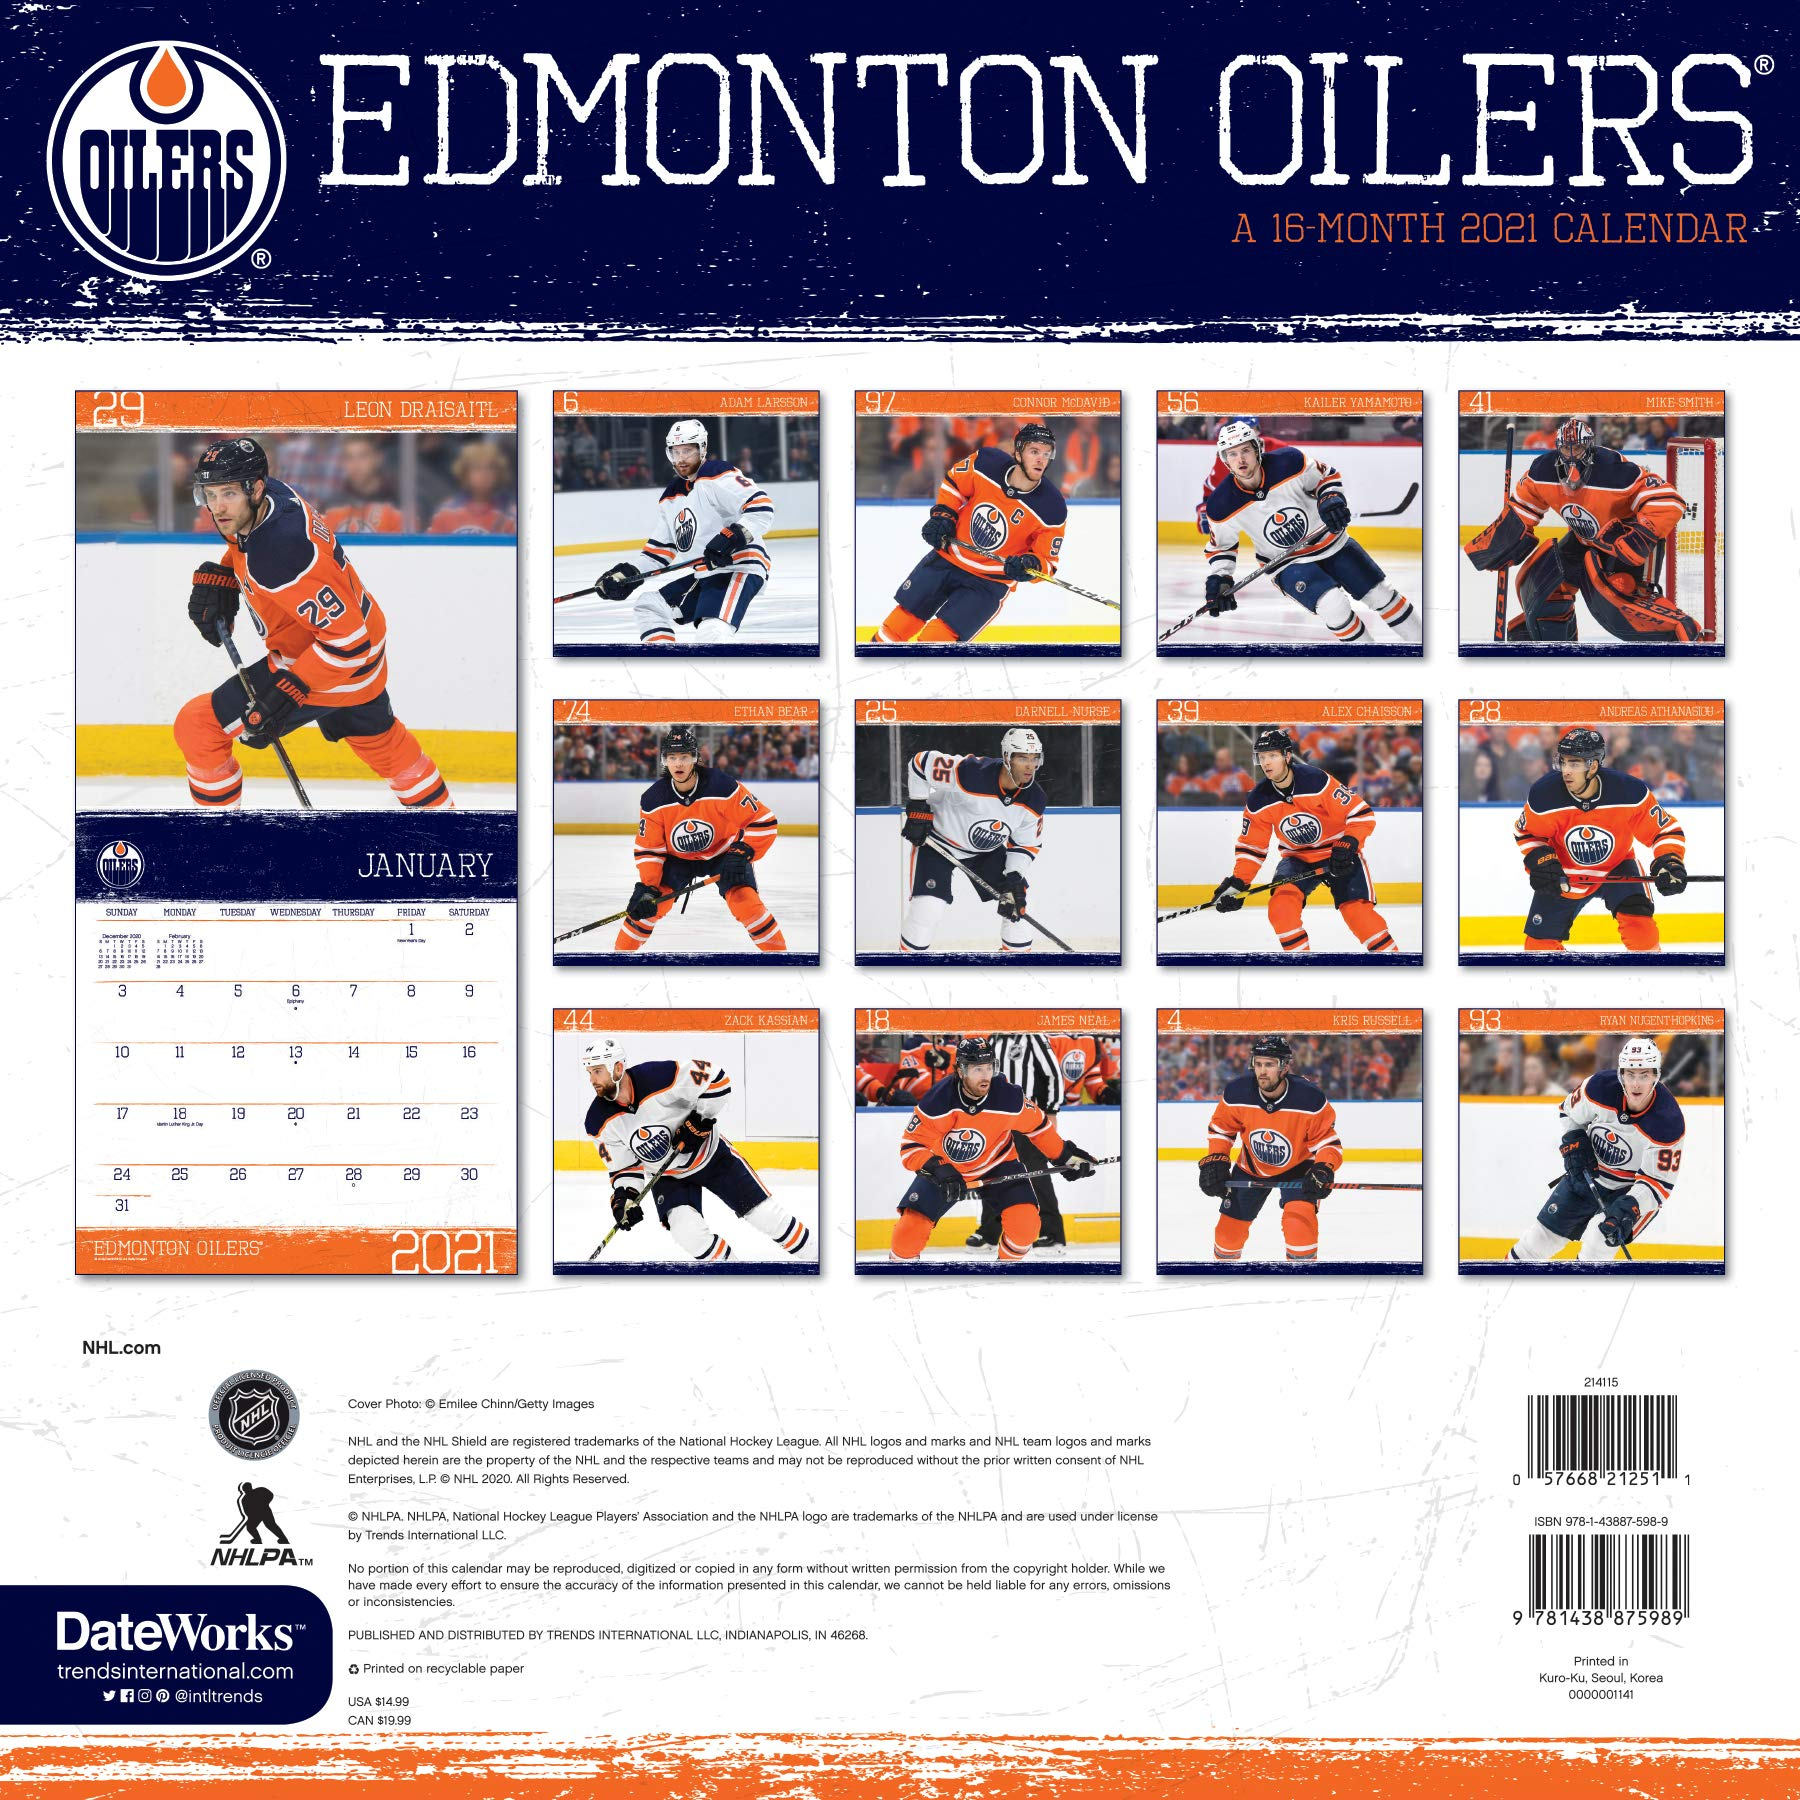 2021 Edmonton Oilers Wall Calendar Trends International 9781438875989 Amazon Com Books